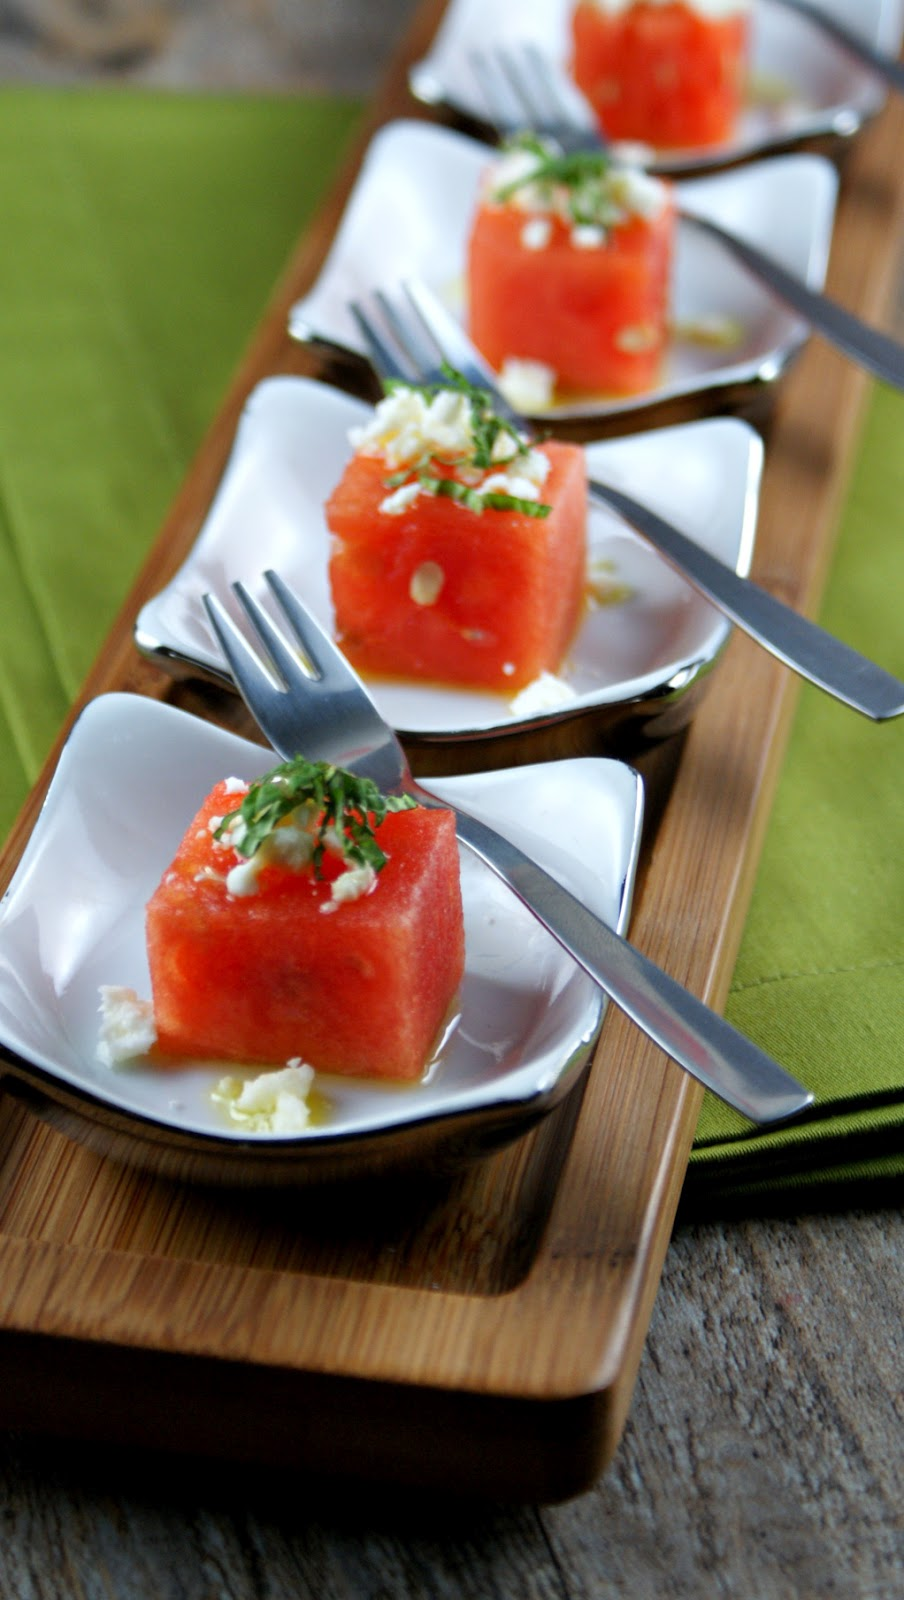 Authentic Suburban Gourmet: Watermelon Bites with Basil ...